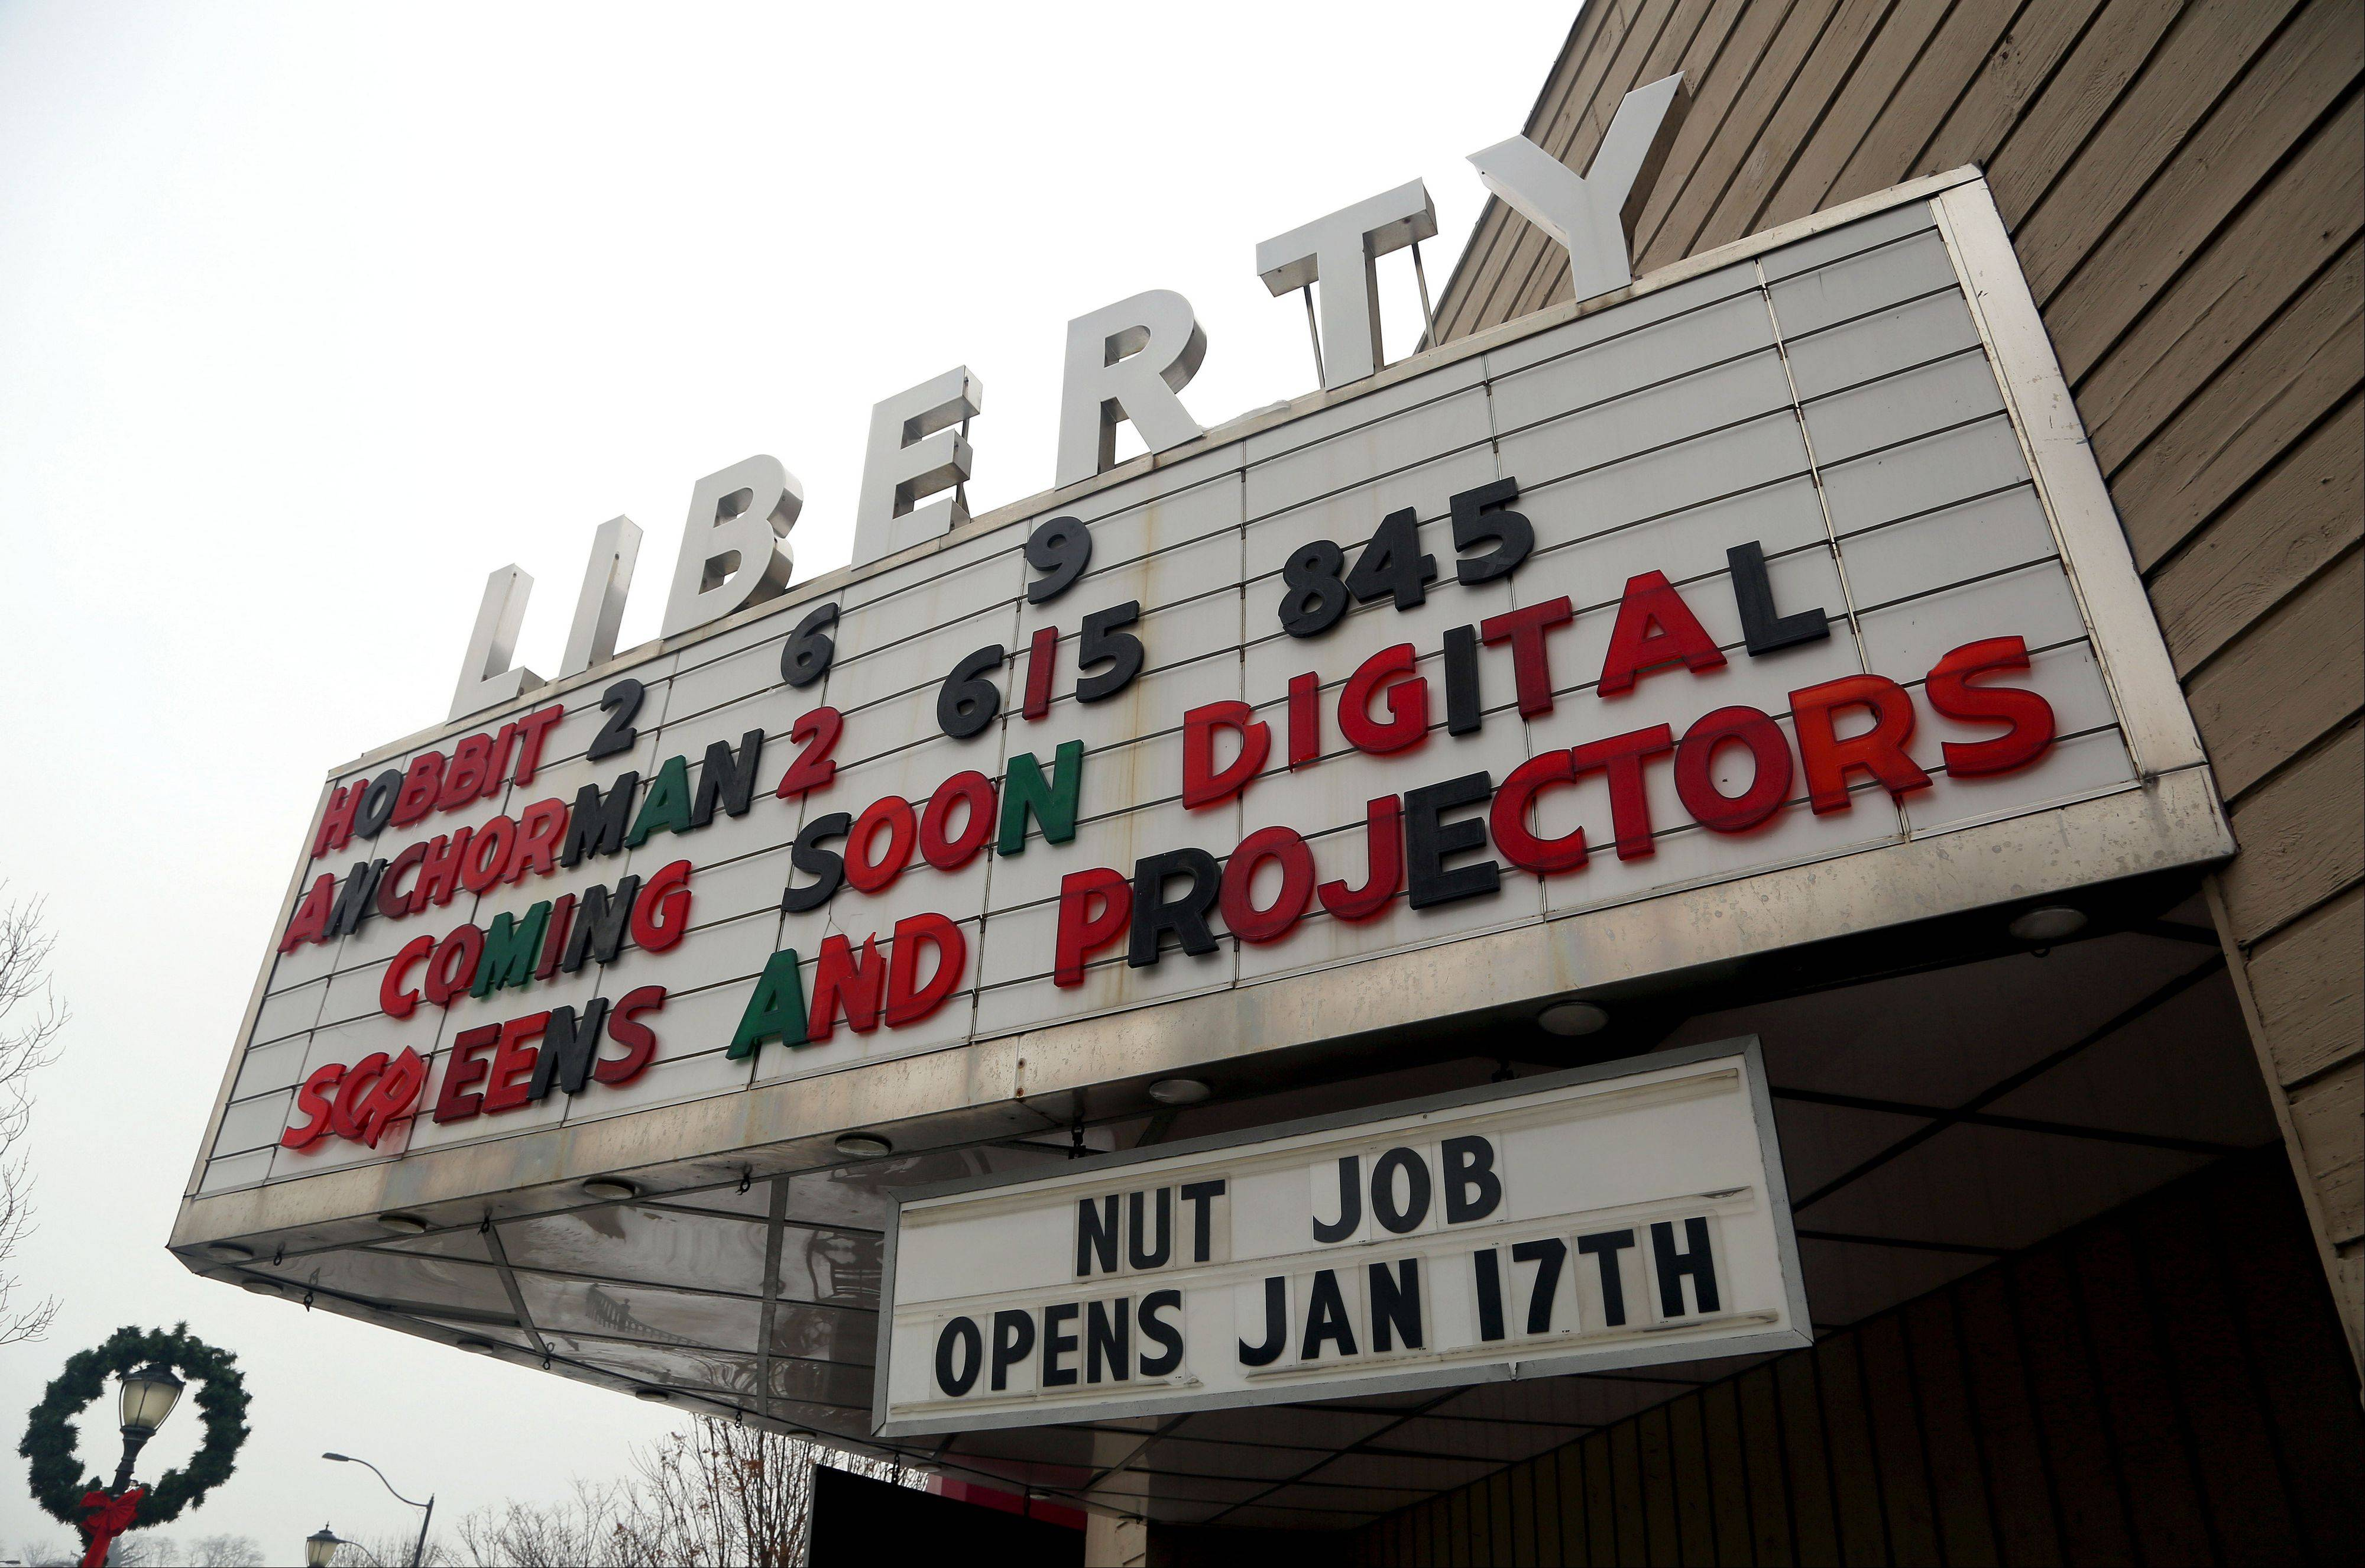 The Liberty 1 & 2 Theater in downtown Libertyville will soon have new digital projectors and screens.